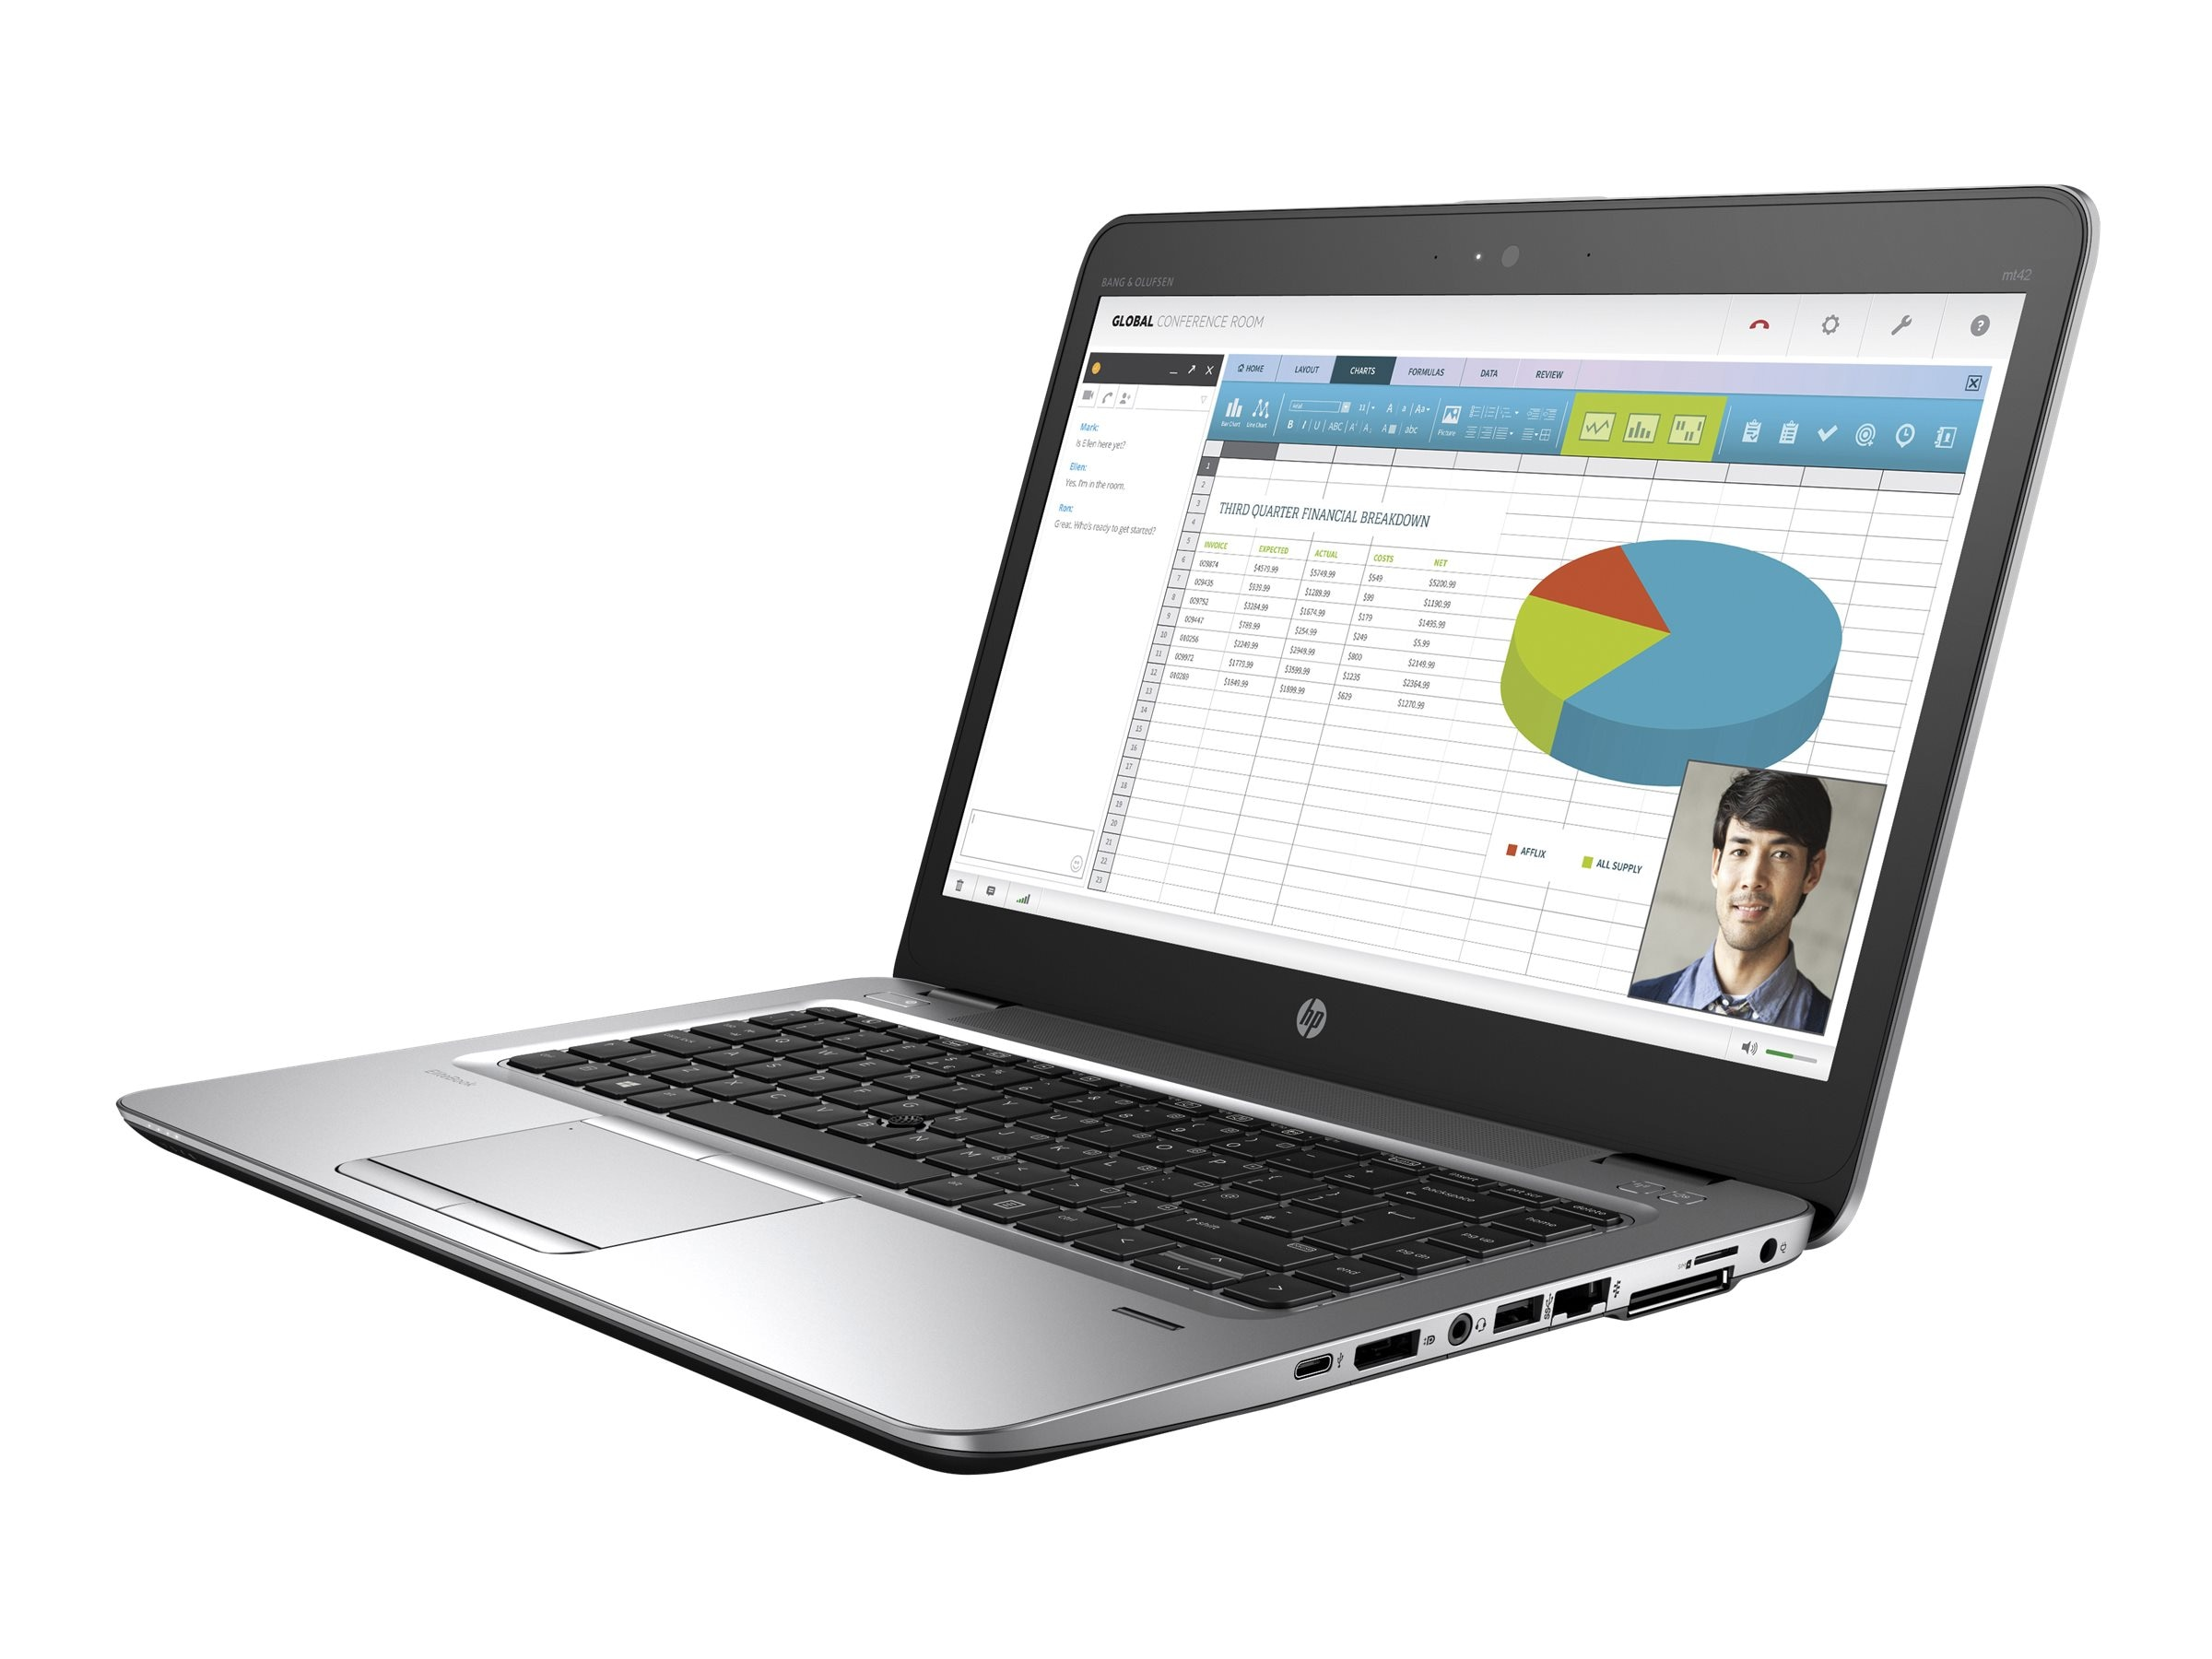 HP mt42 Mobile Thin Client AMD QC A8-8600B 1.6GHz 4GB 32GB SSD ac BT Verizon WC 3C 14 FHD WES7E, X9U31UA#ABA